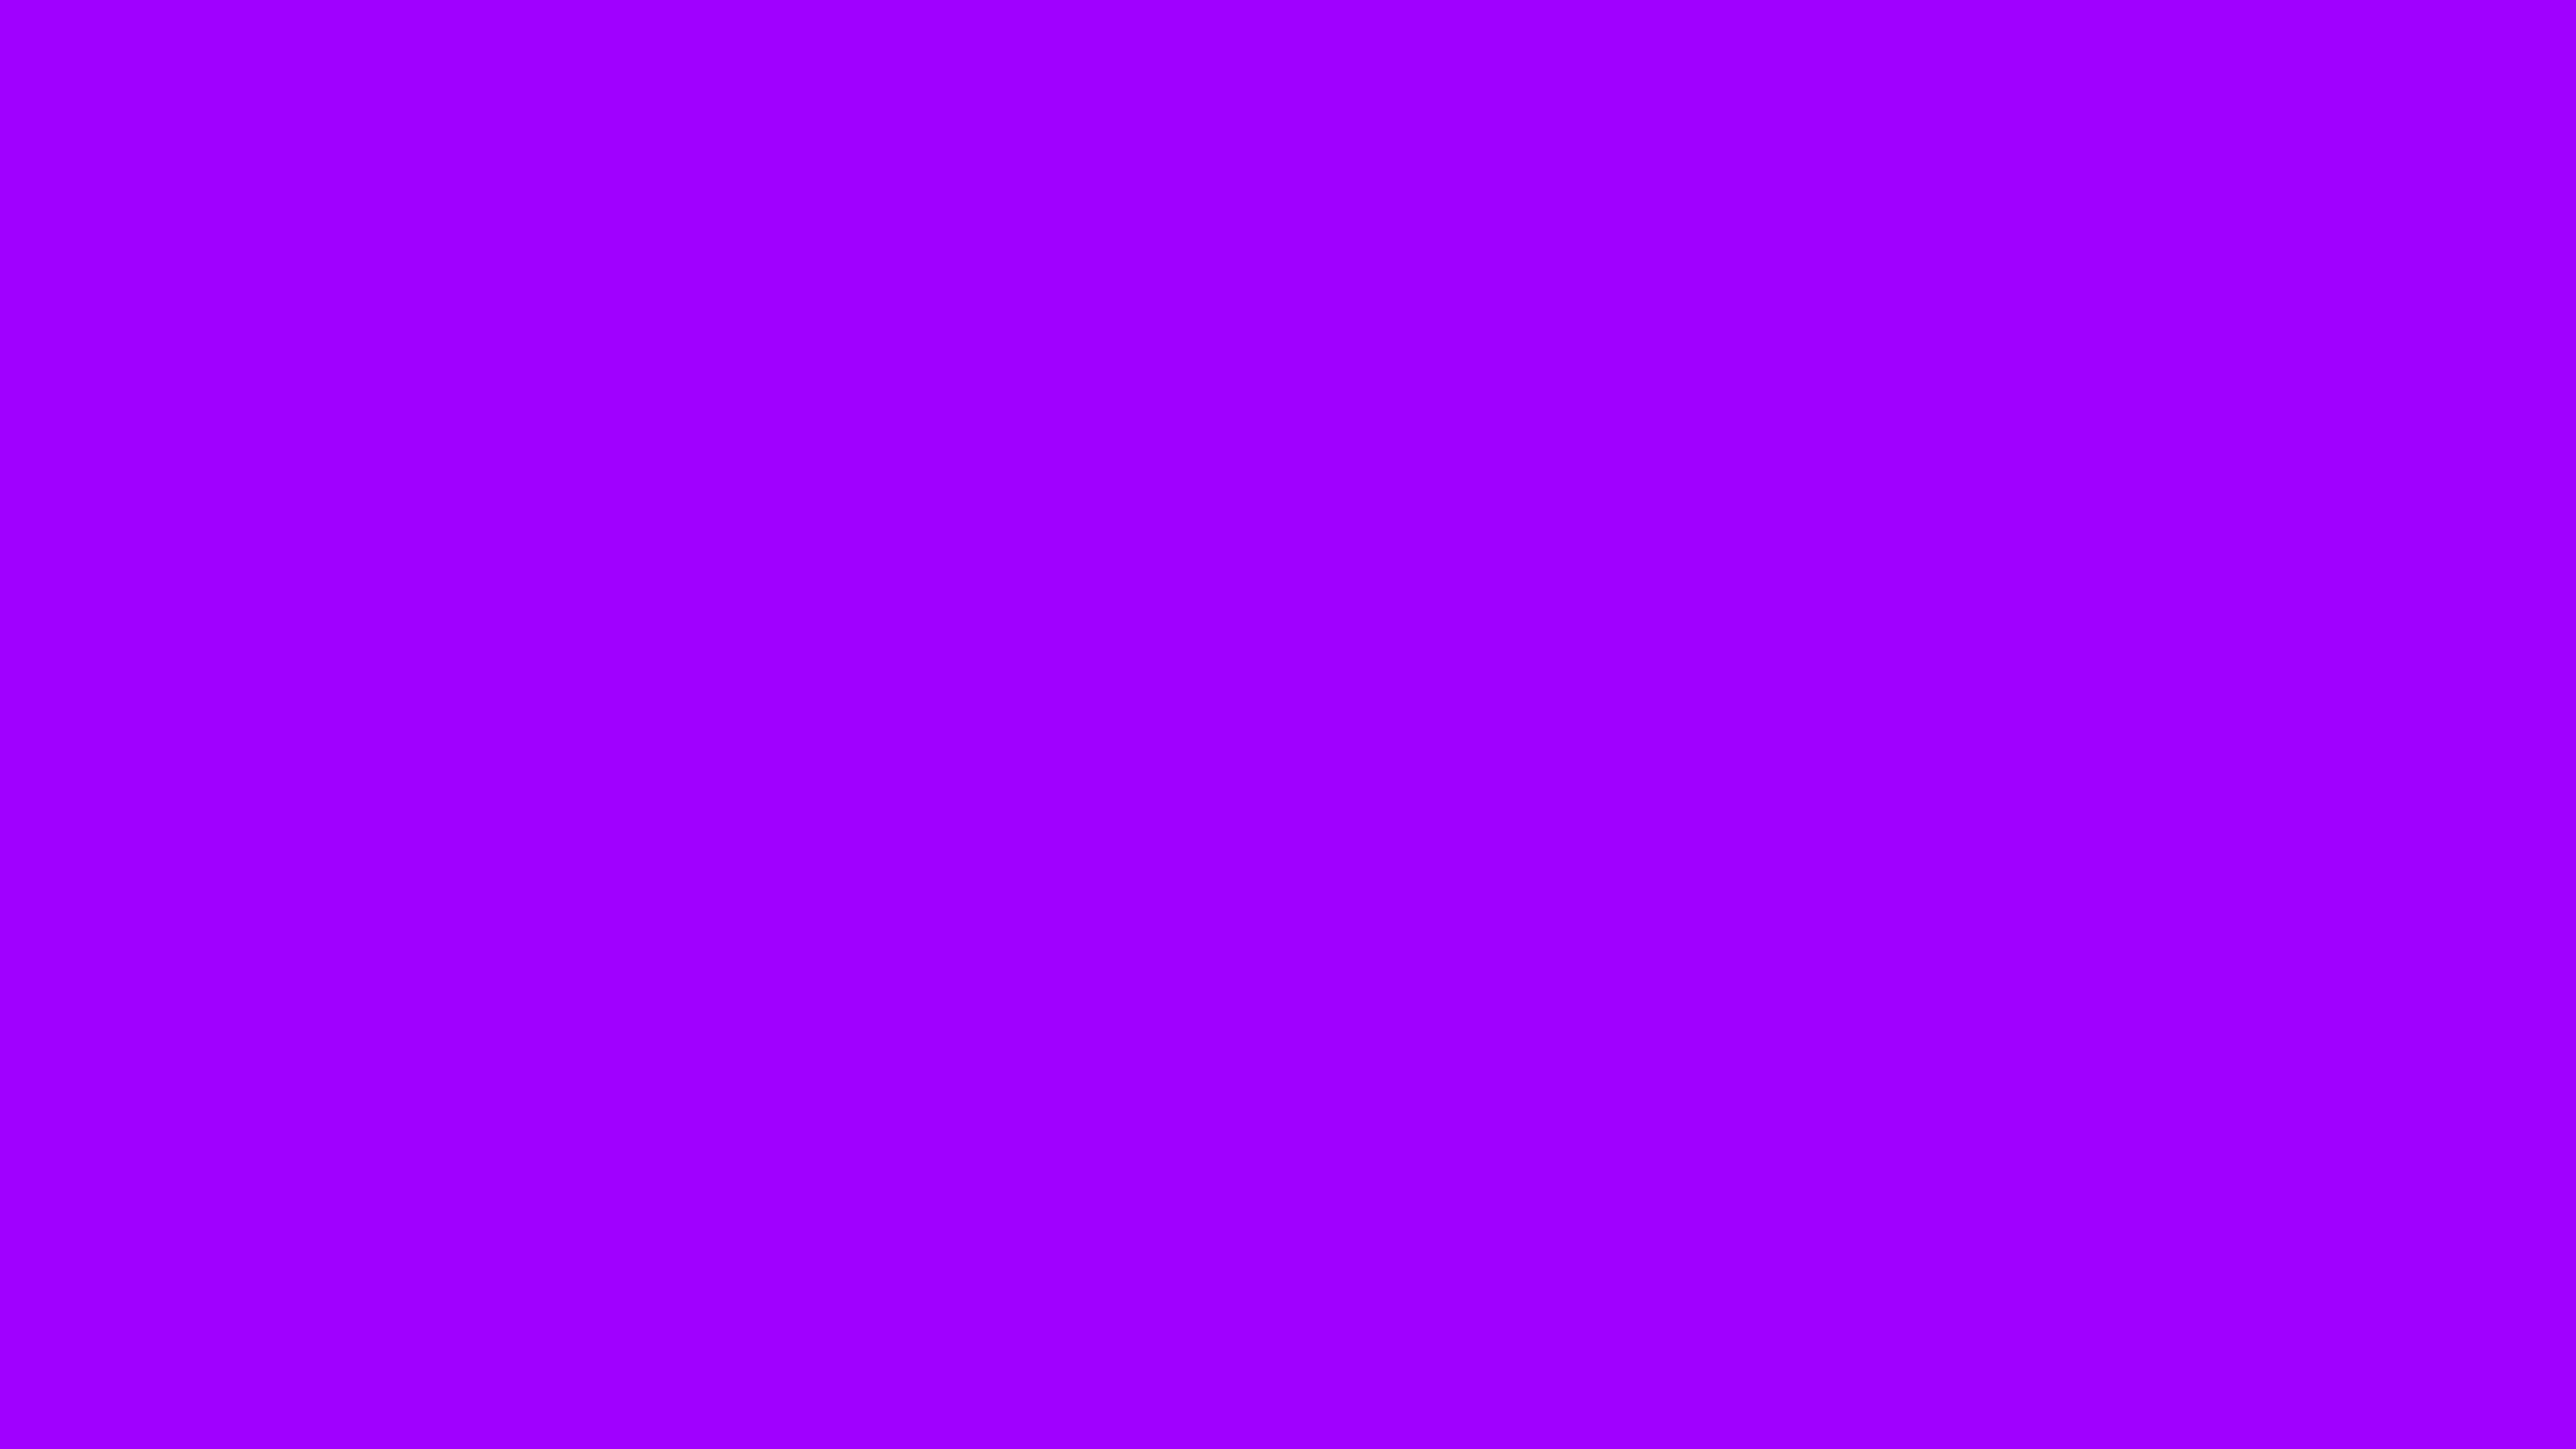 3840x2160 Vivid Violet Solid Color Background